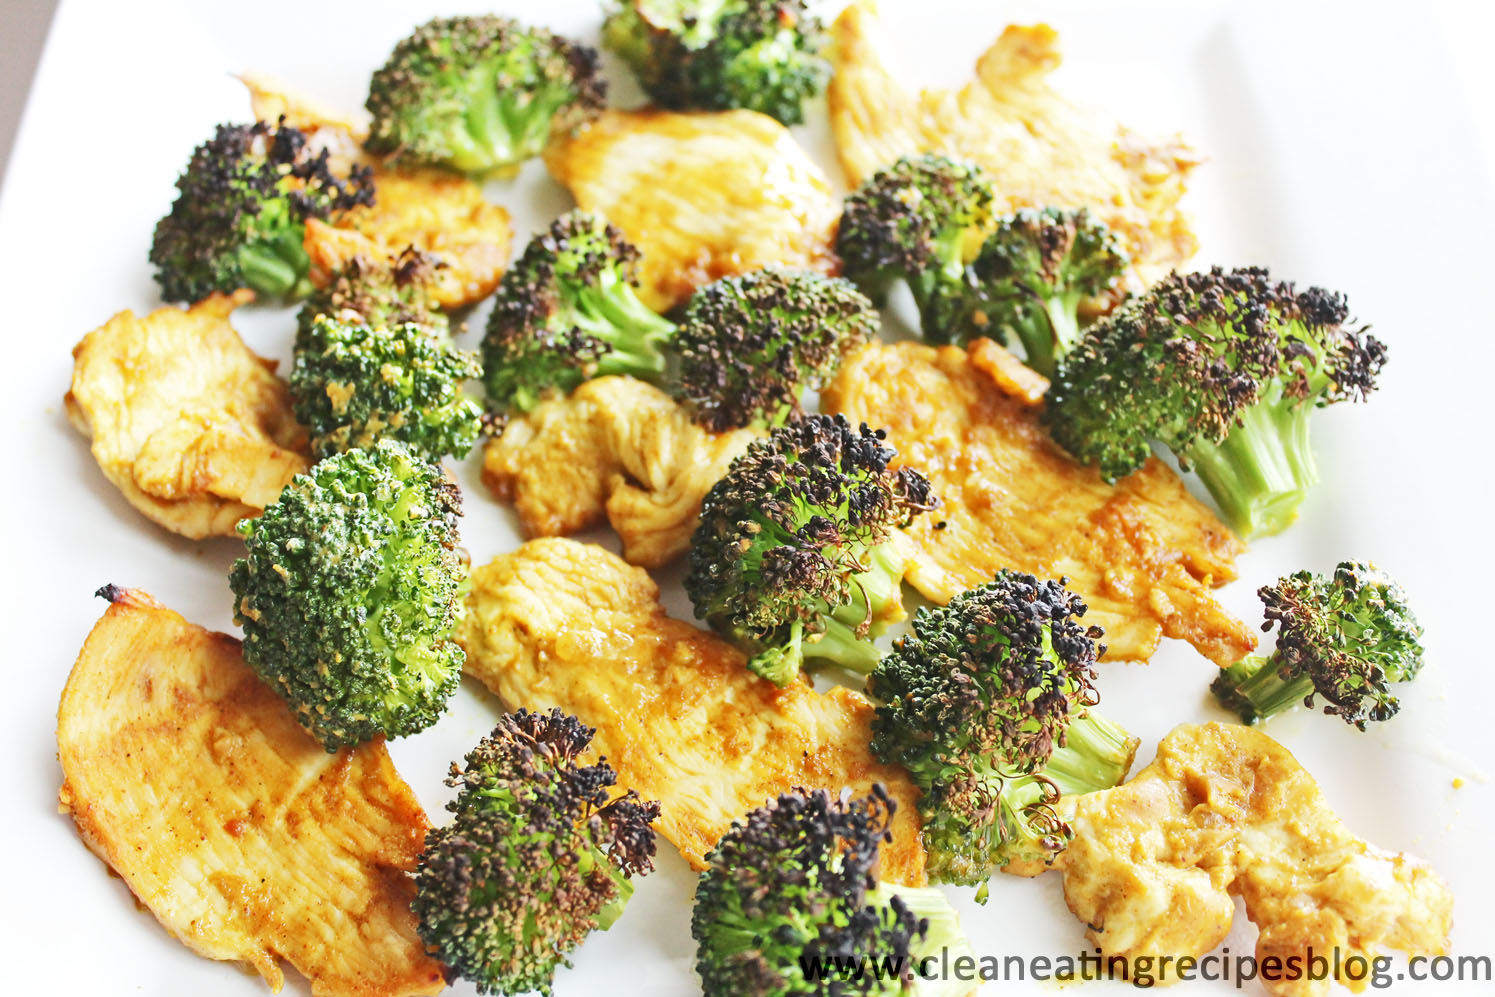 Clean Eating Dinner – Peanut Sauce Chicken and Broccoli Broil